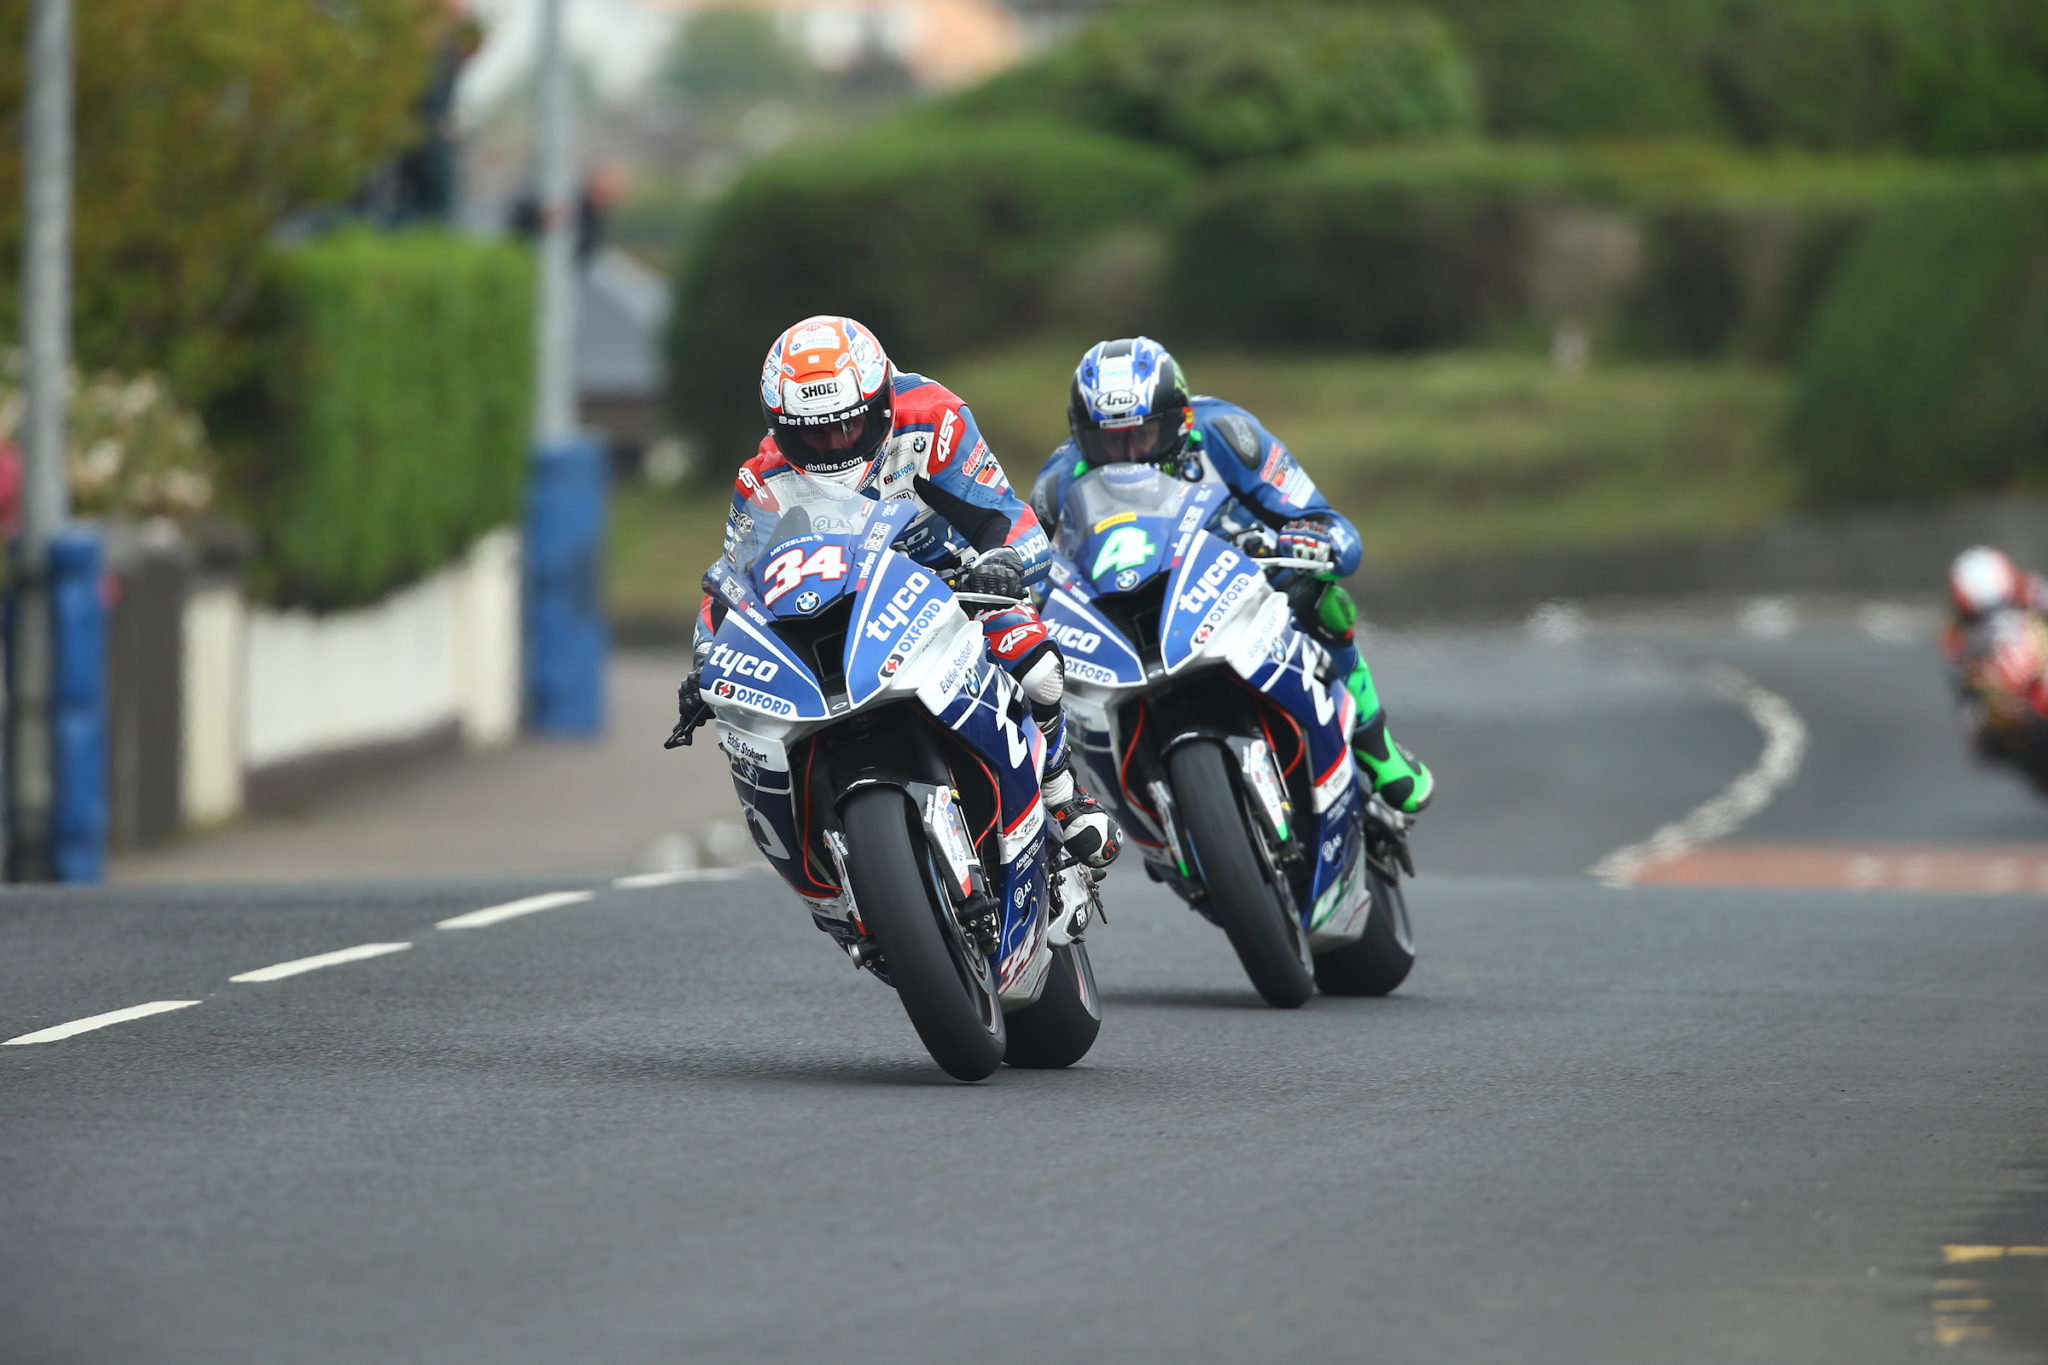 Seeley dominating the NW200 credit Double Red